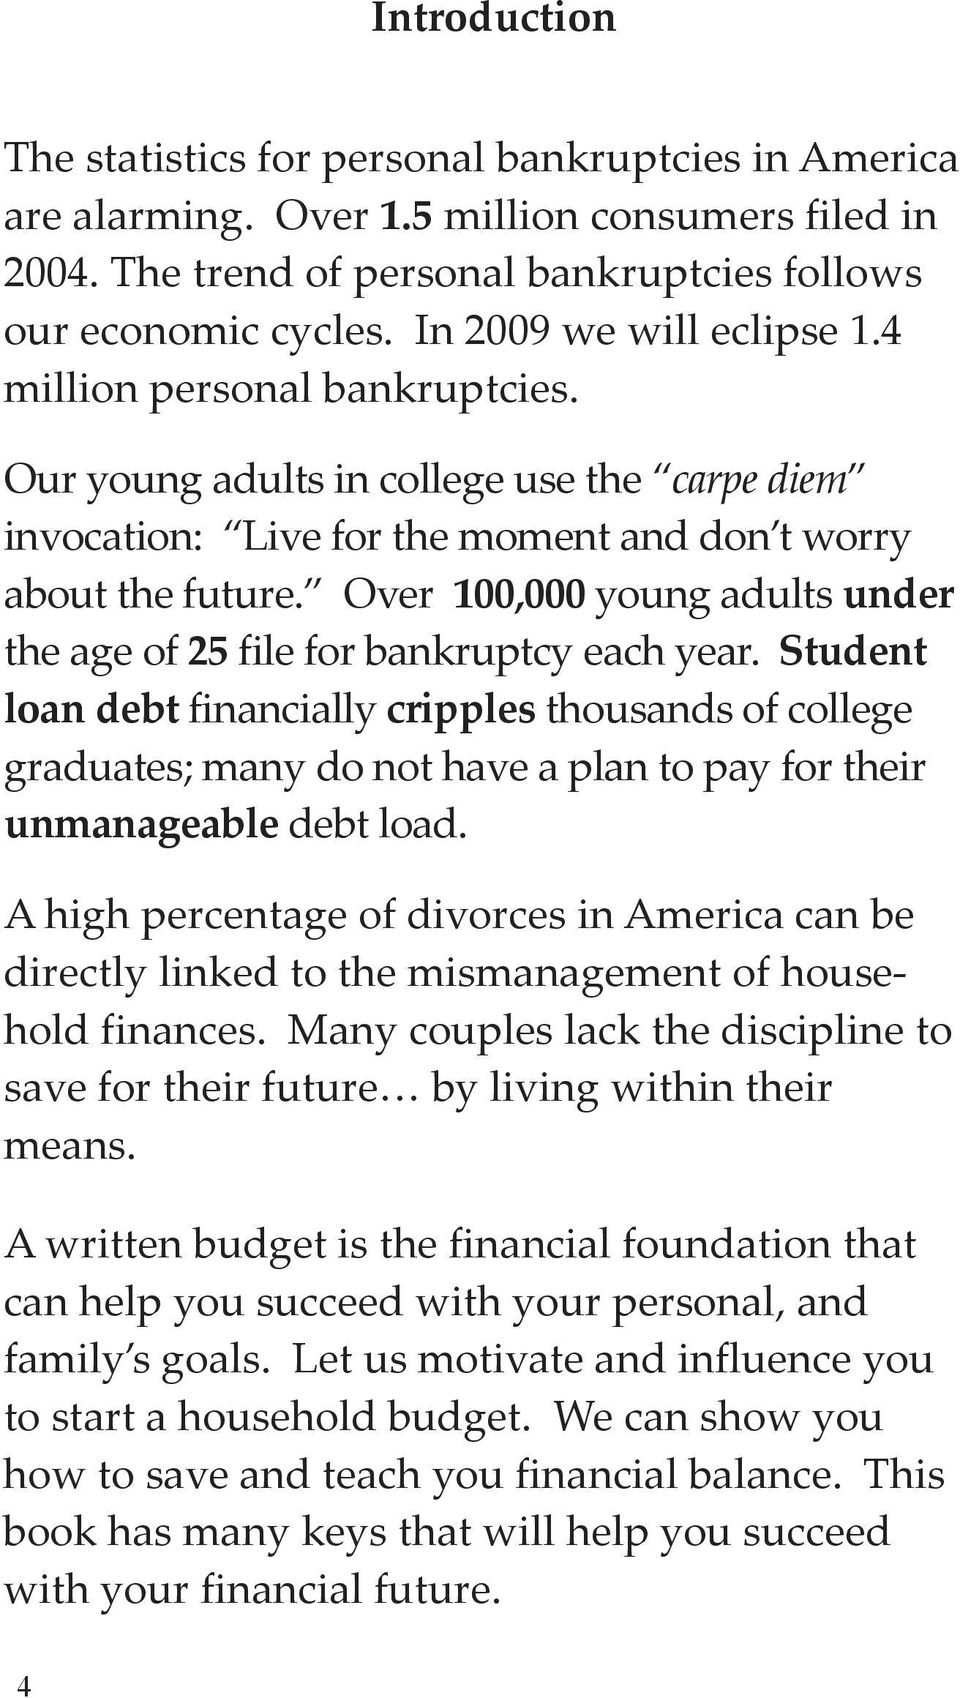 Over 100,000 young adults under the age of 25 file for bankruptcy each year.